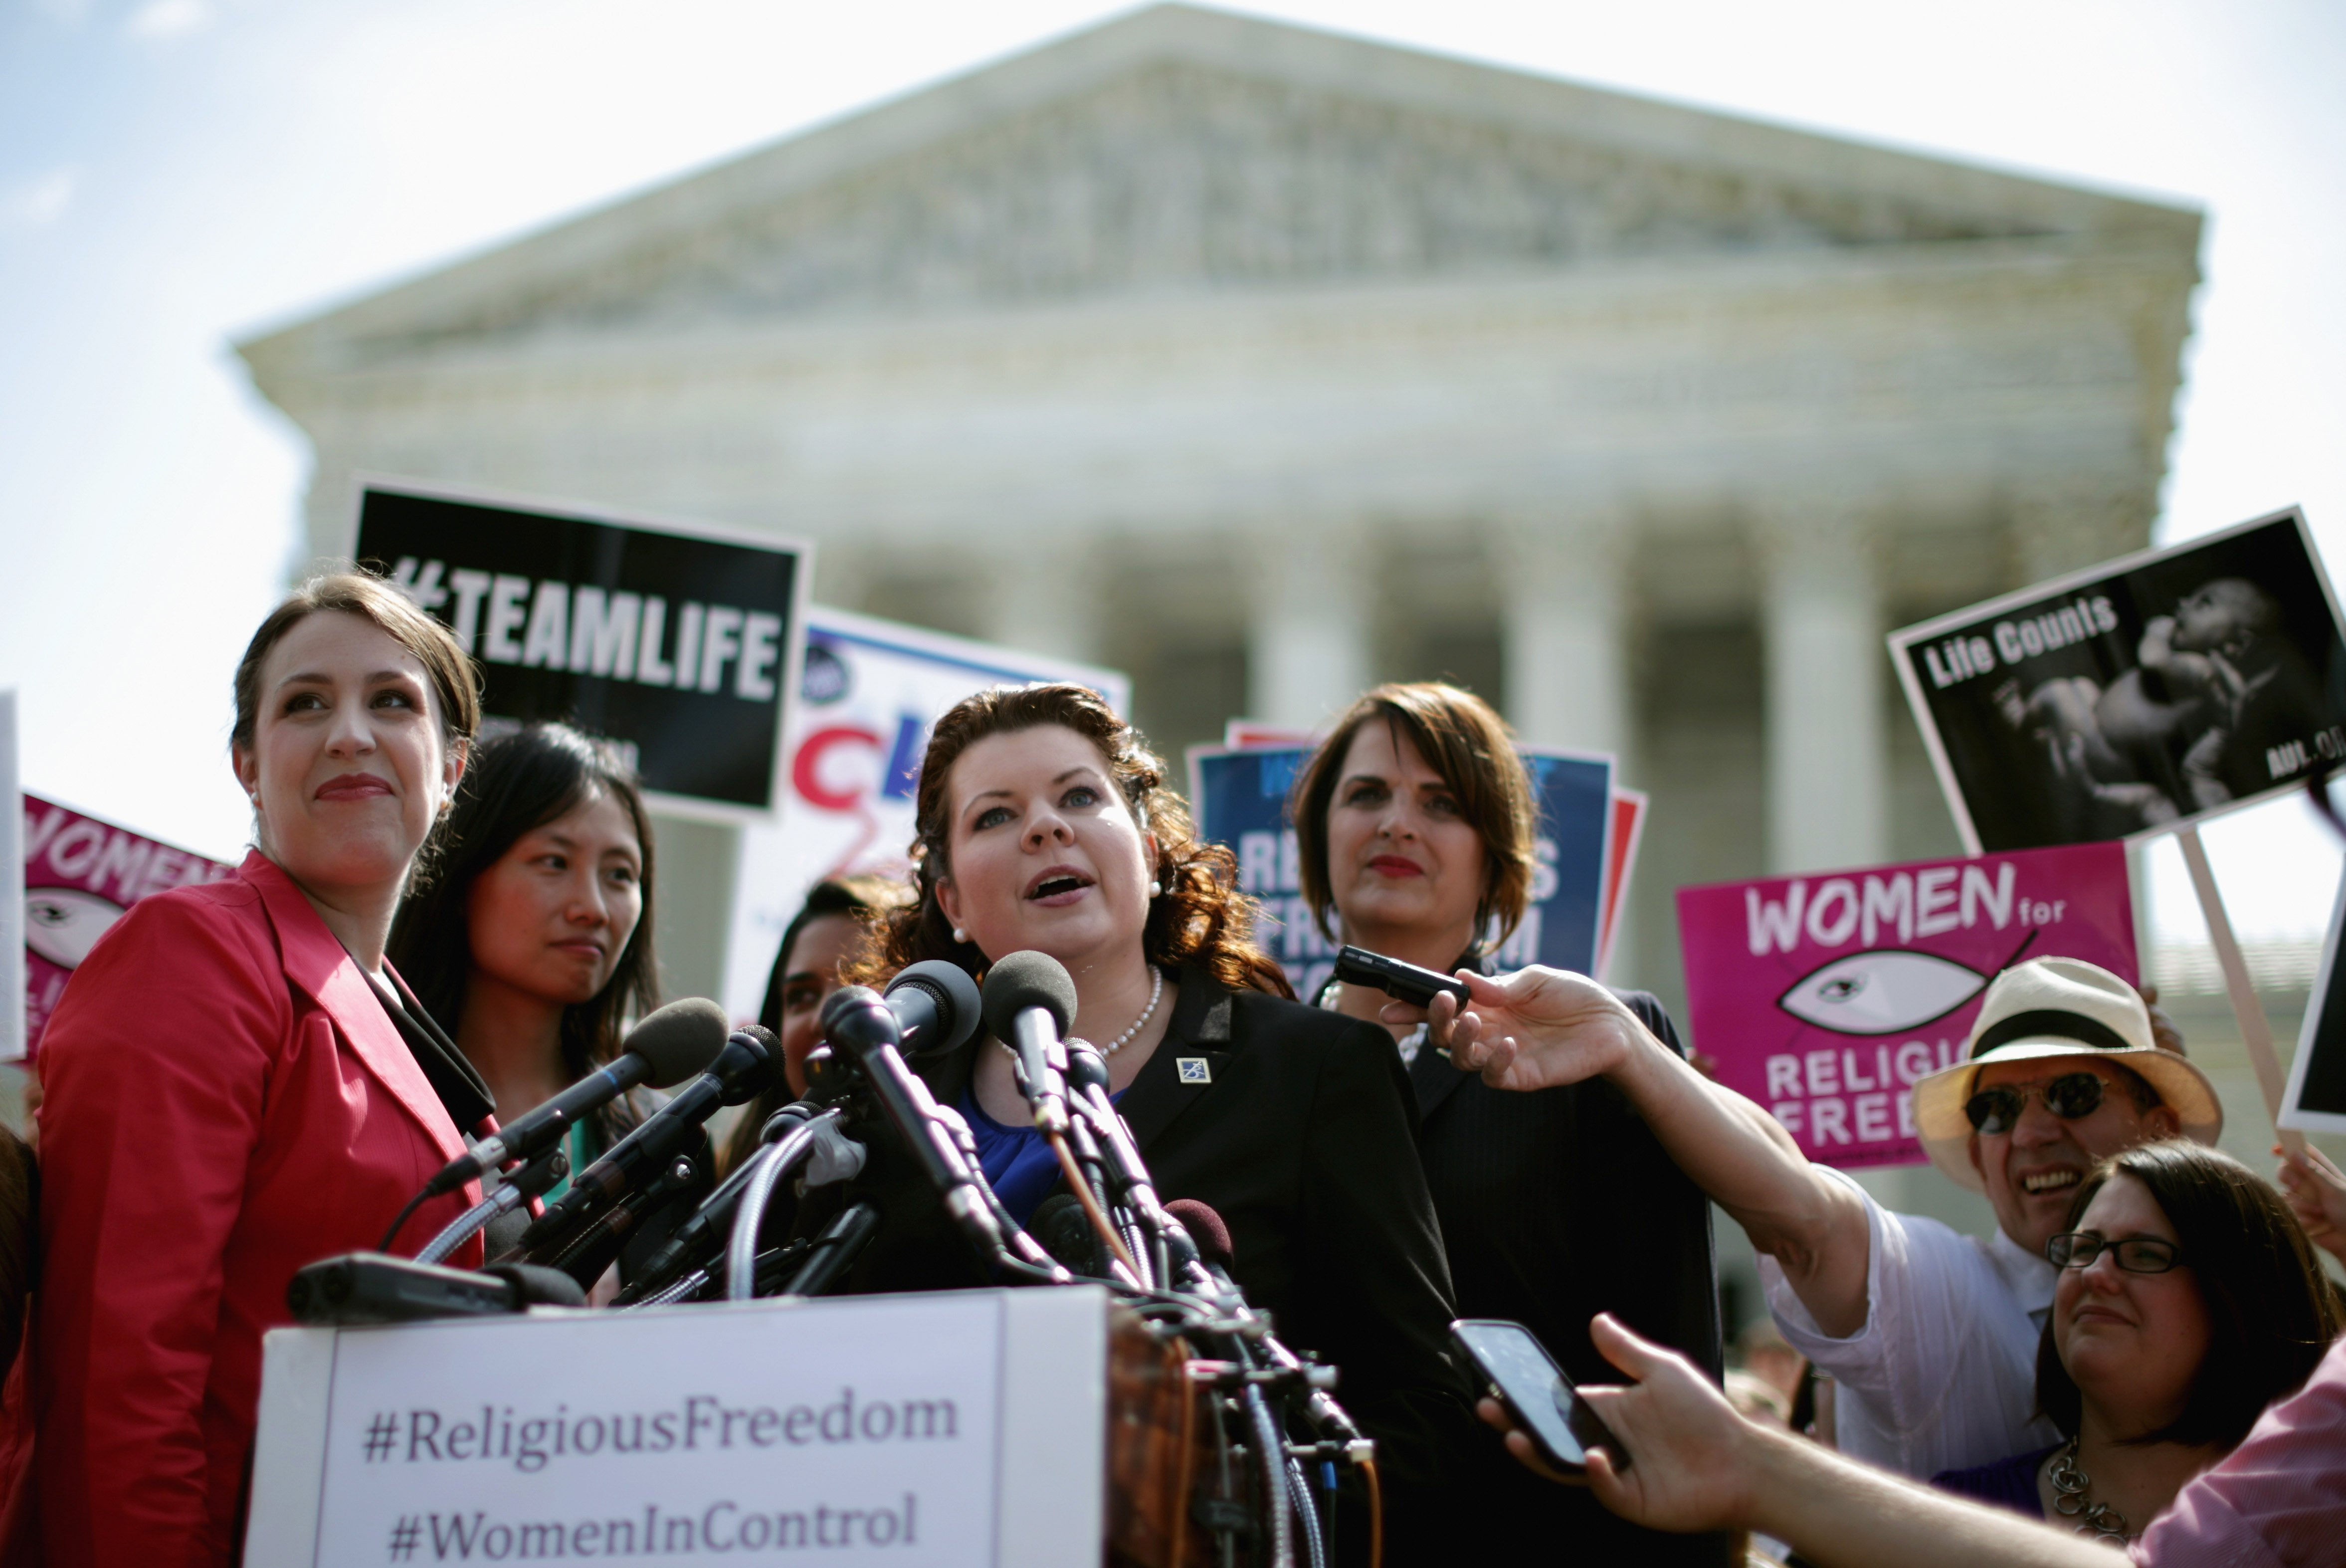 Lori Windham (C), senior counsel for The Becket Fund for Religious Liberty, addresses the news media in front of the Supreme Court after the decision in Burwell v. Hobby Lobby Stores June 30, 2014 in Washington.